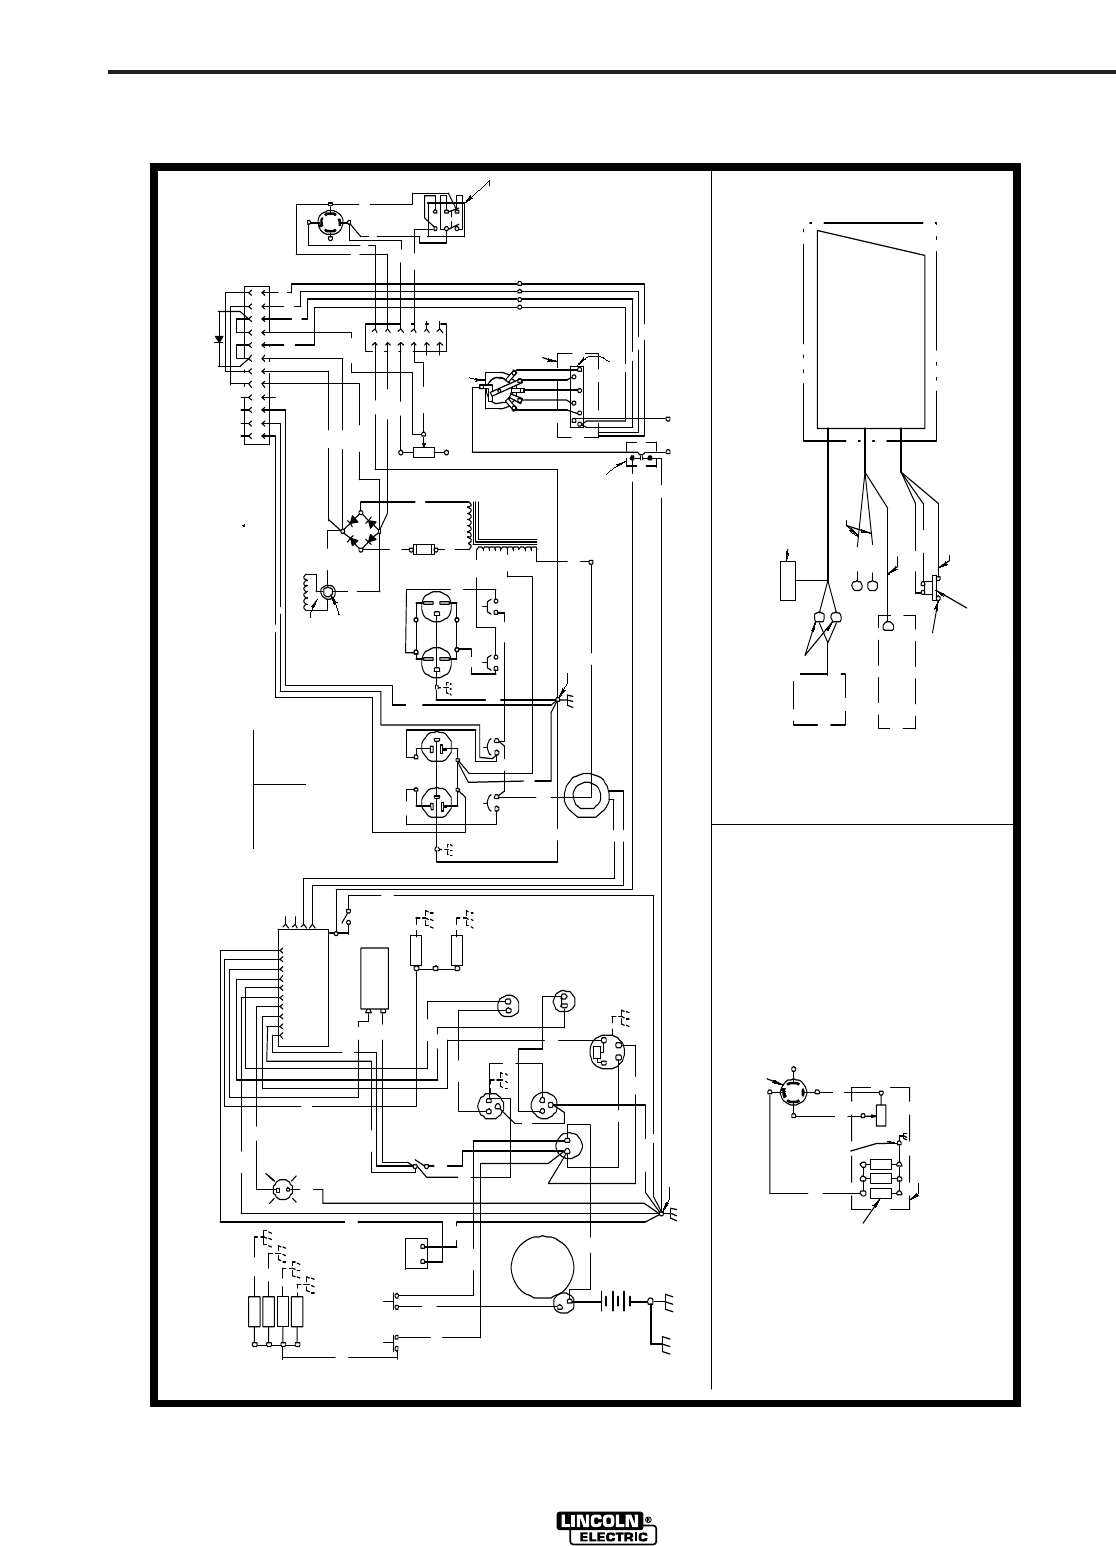 9ff0ff3e a962 4eb5 b78f 912a2d4984a8 bg1d?resize\\\\\\\\\\\\\\\\\\\=665%2C921 hobart 4346 wiring diagram manual hobart mixer \u2022 edmiracle co  at bayanpartner.co